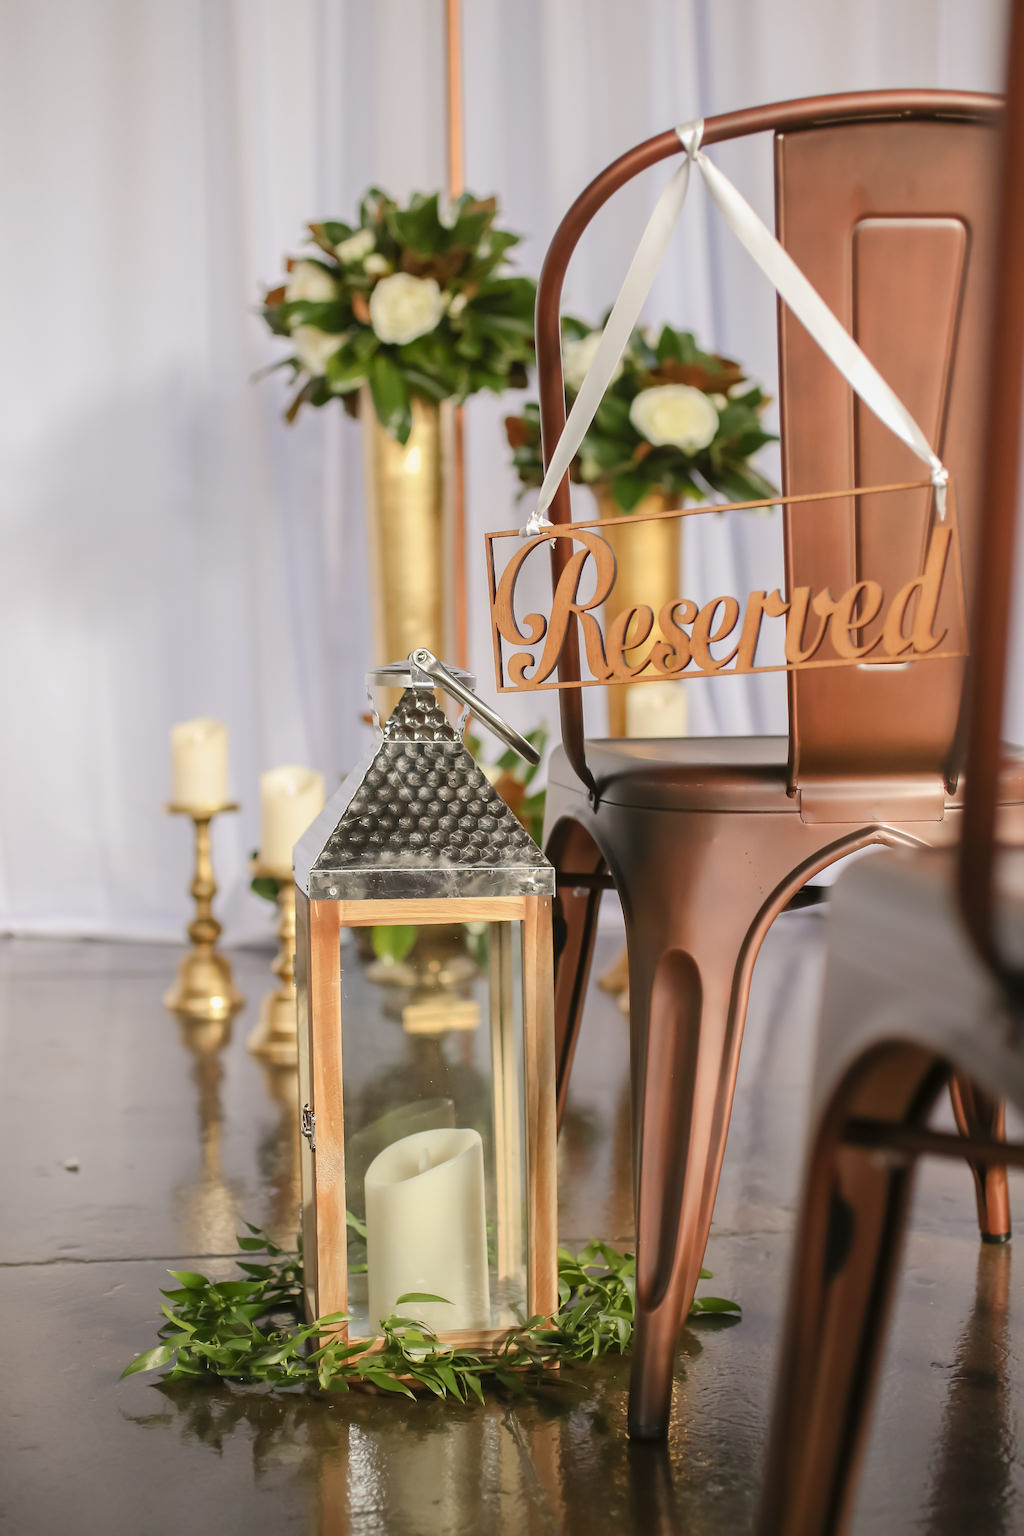 Industrial Inspired Wedding Ceremony Decor, Bronze Metal Chairs, Gold Lanterns with Greenery Wreath   Tampa Bay Wedding Photographer Lifelong Photography Studios   Wedding Rentals A Chair Affair